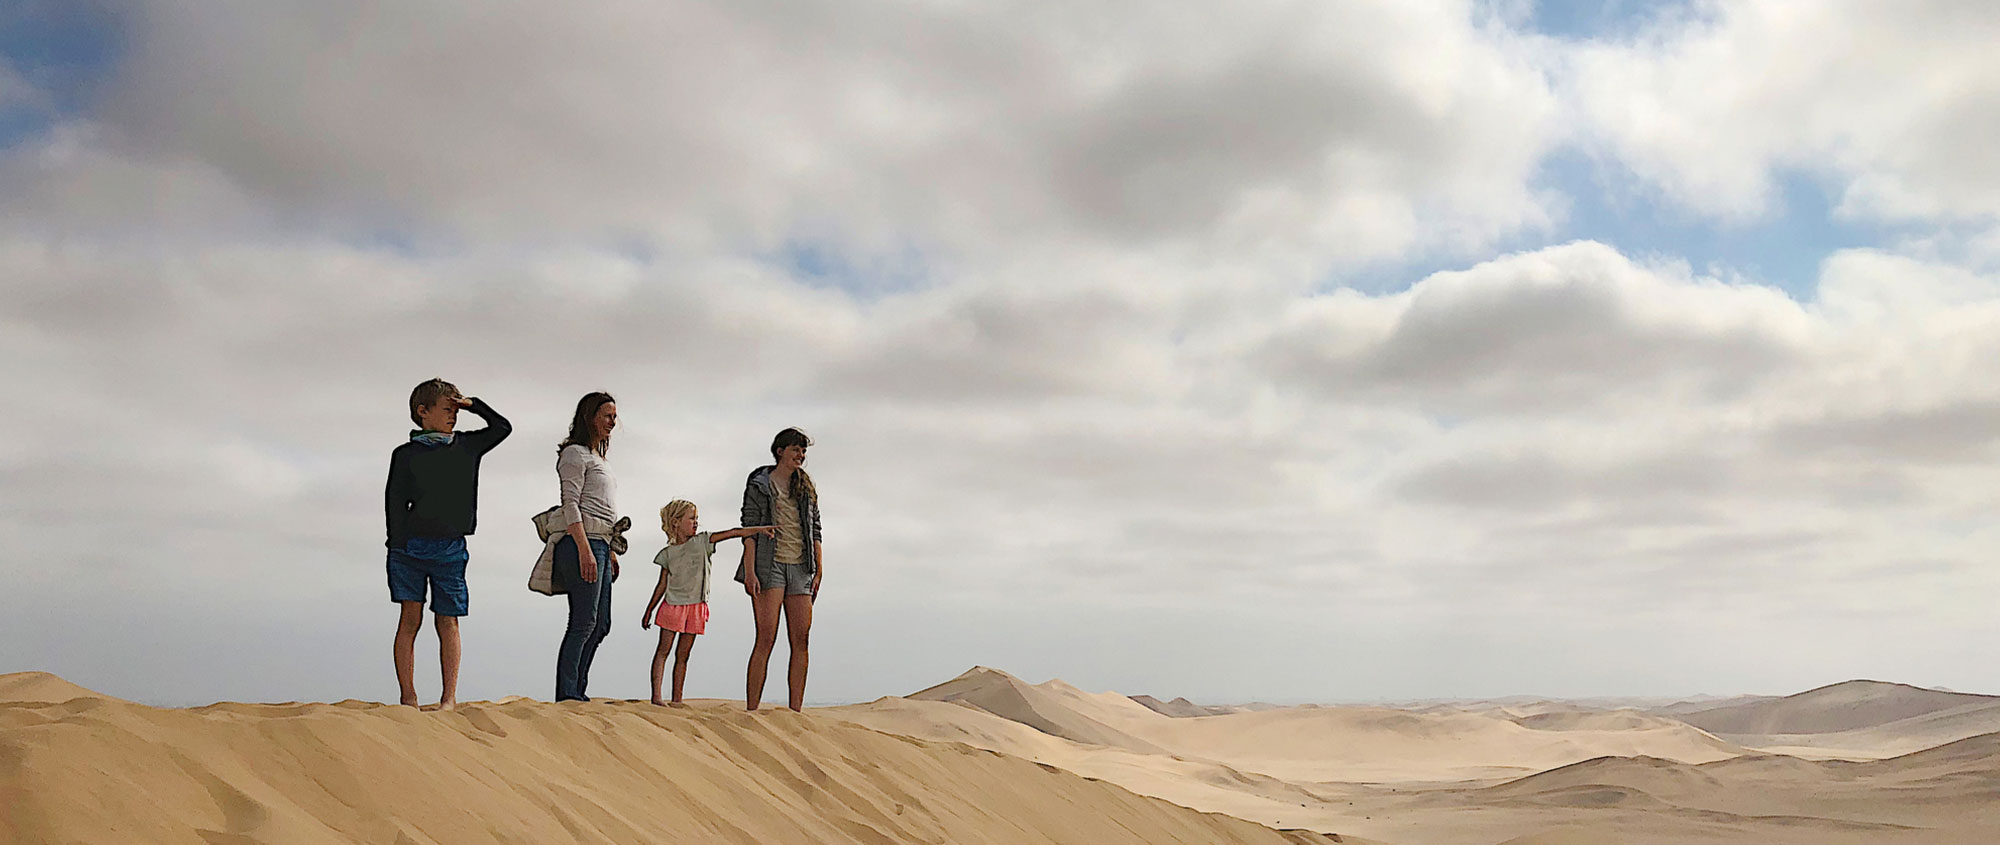 Family standing on dunes, Namibia